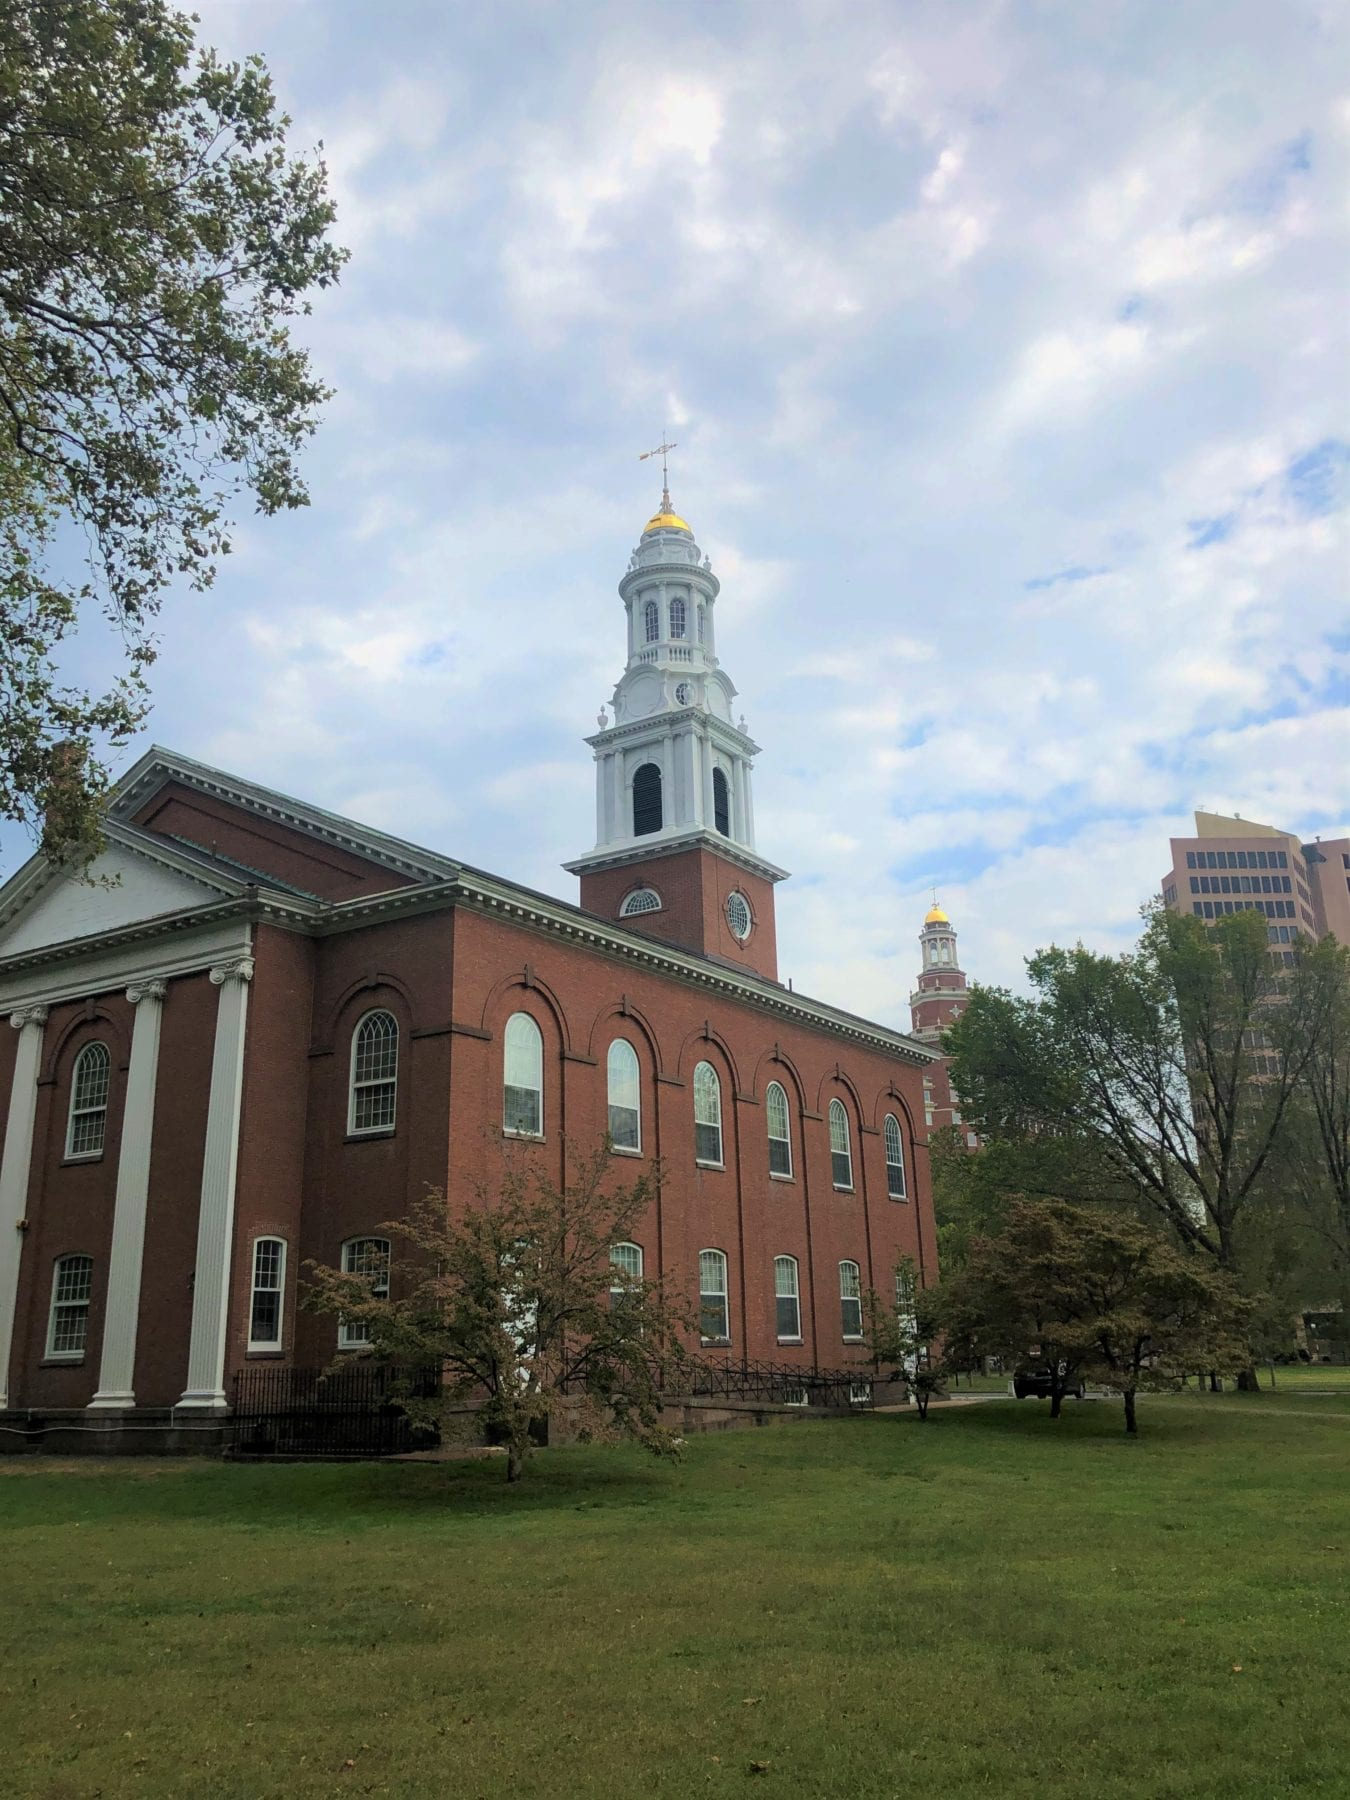 Best Historical Sites on the Eat Coast- New Haven